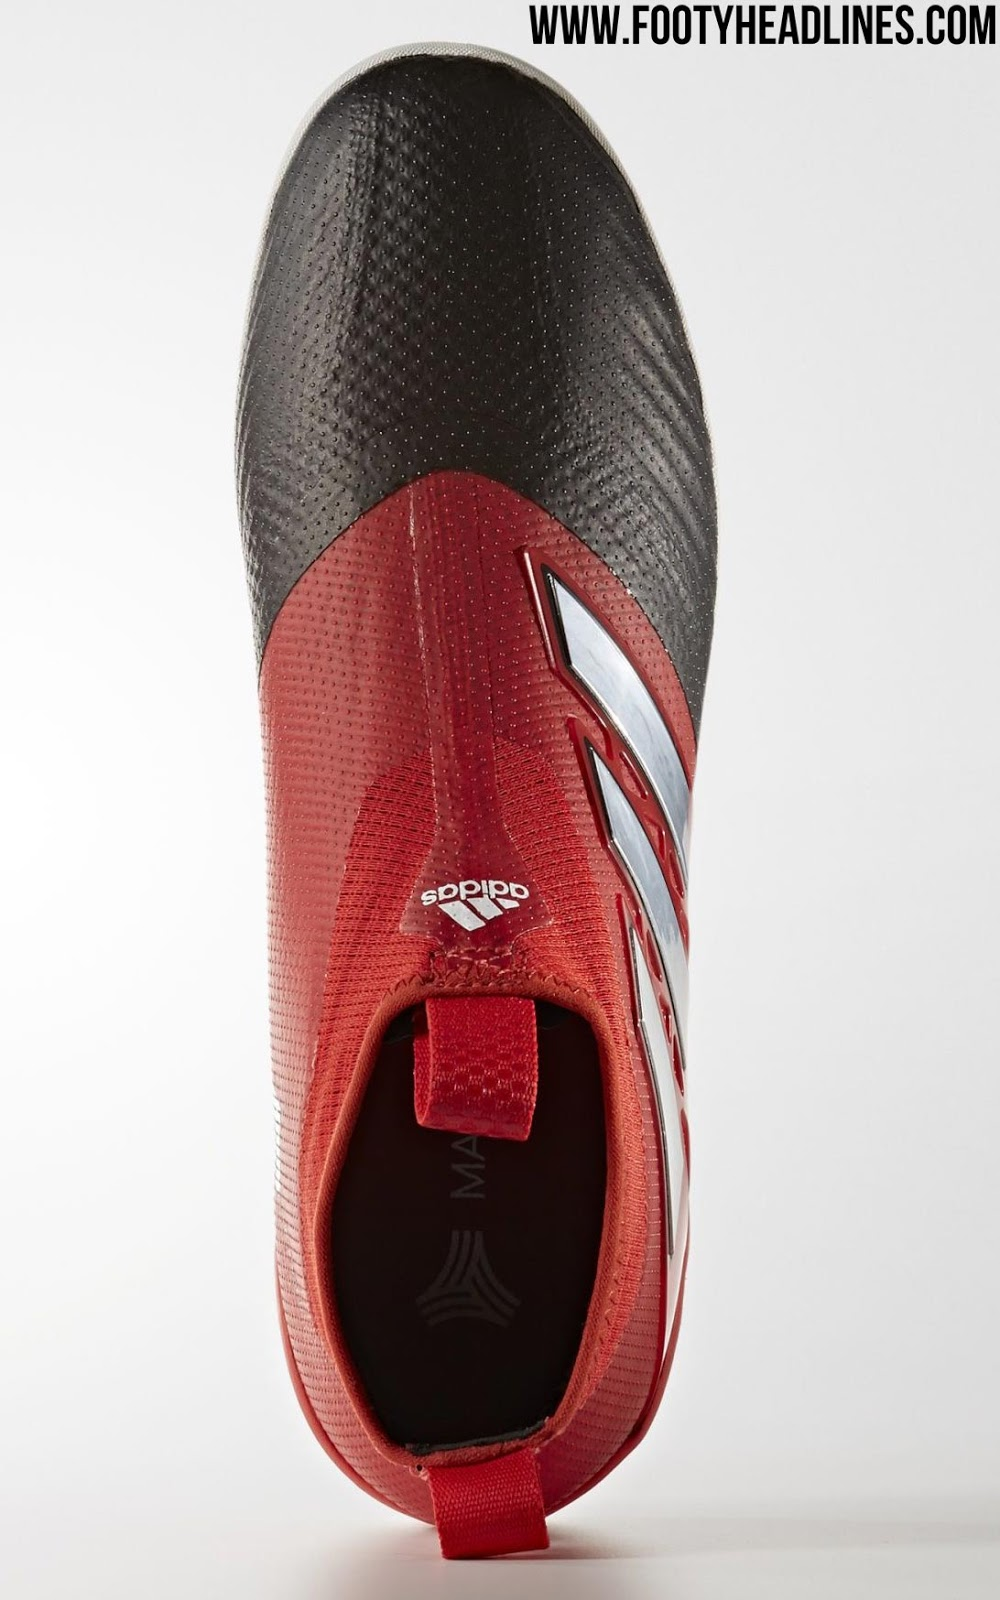 4b454f1082d7 ... Similar to what has been seen on the feet of Adidas superstar Paul  Pogba a number ...